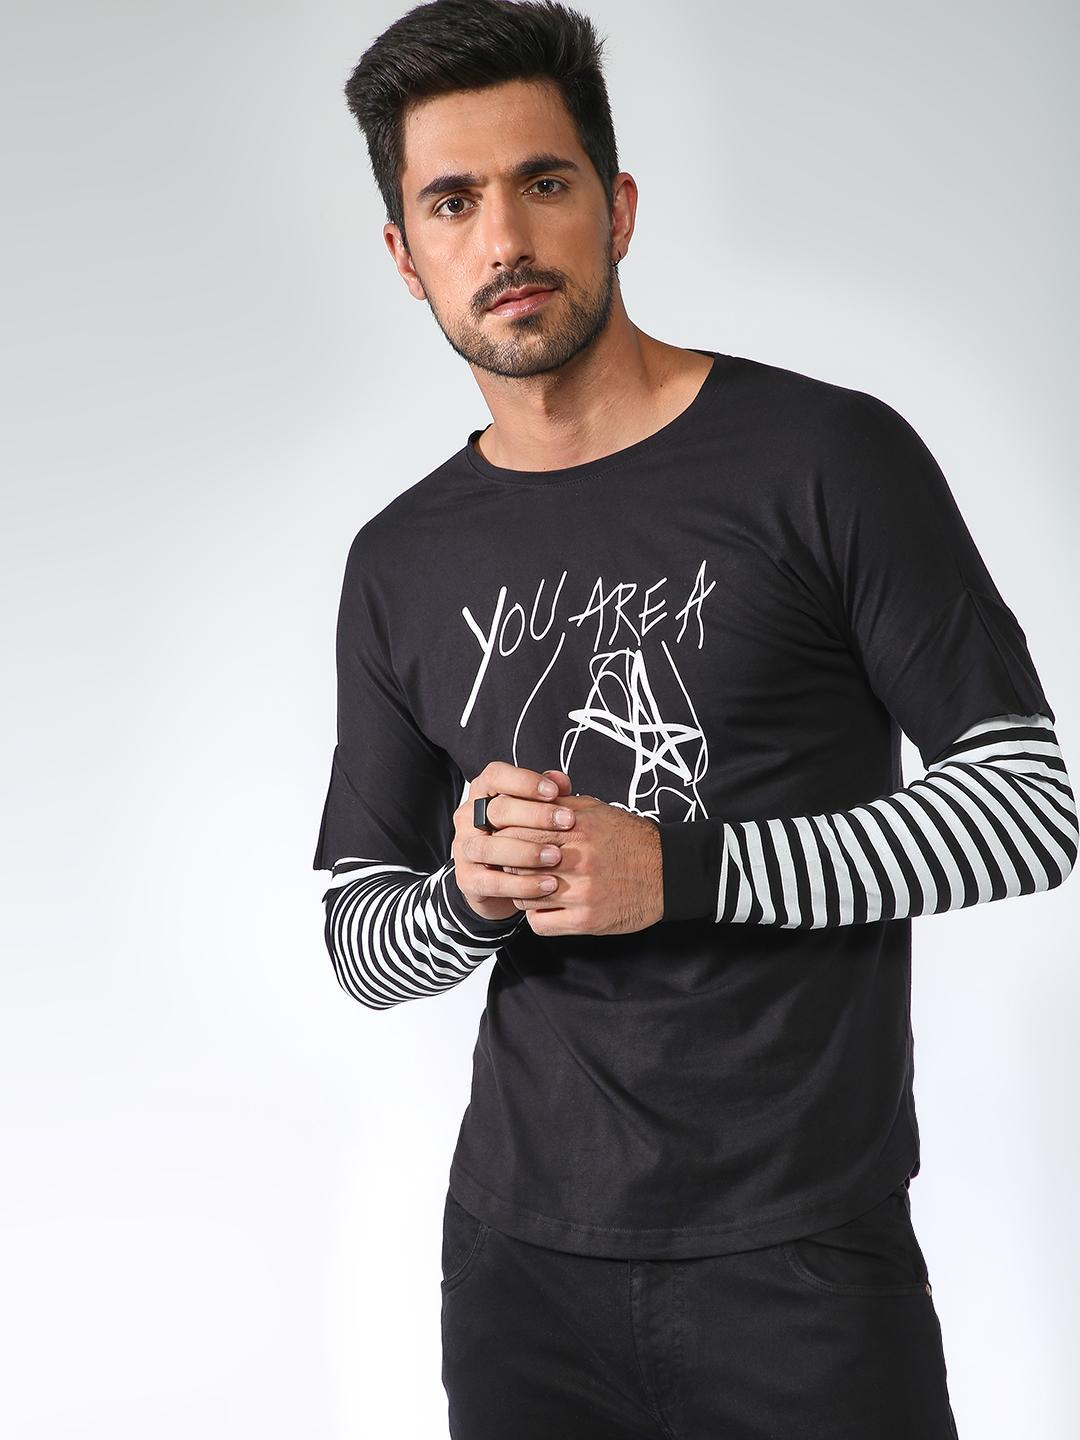 Sheltr Black Youarea Text Print Long Sleeve Crew Neck T-shirt 1